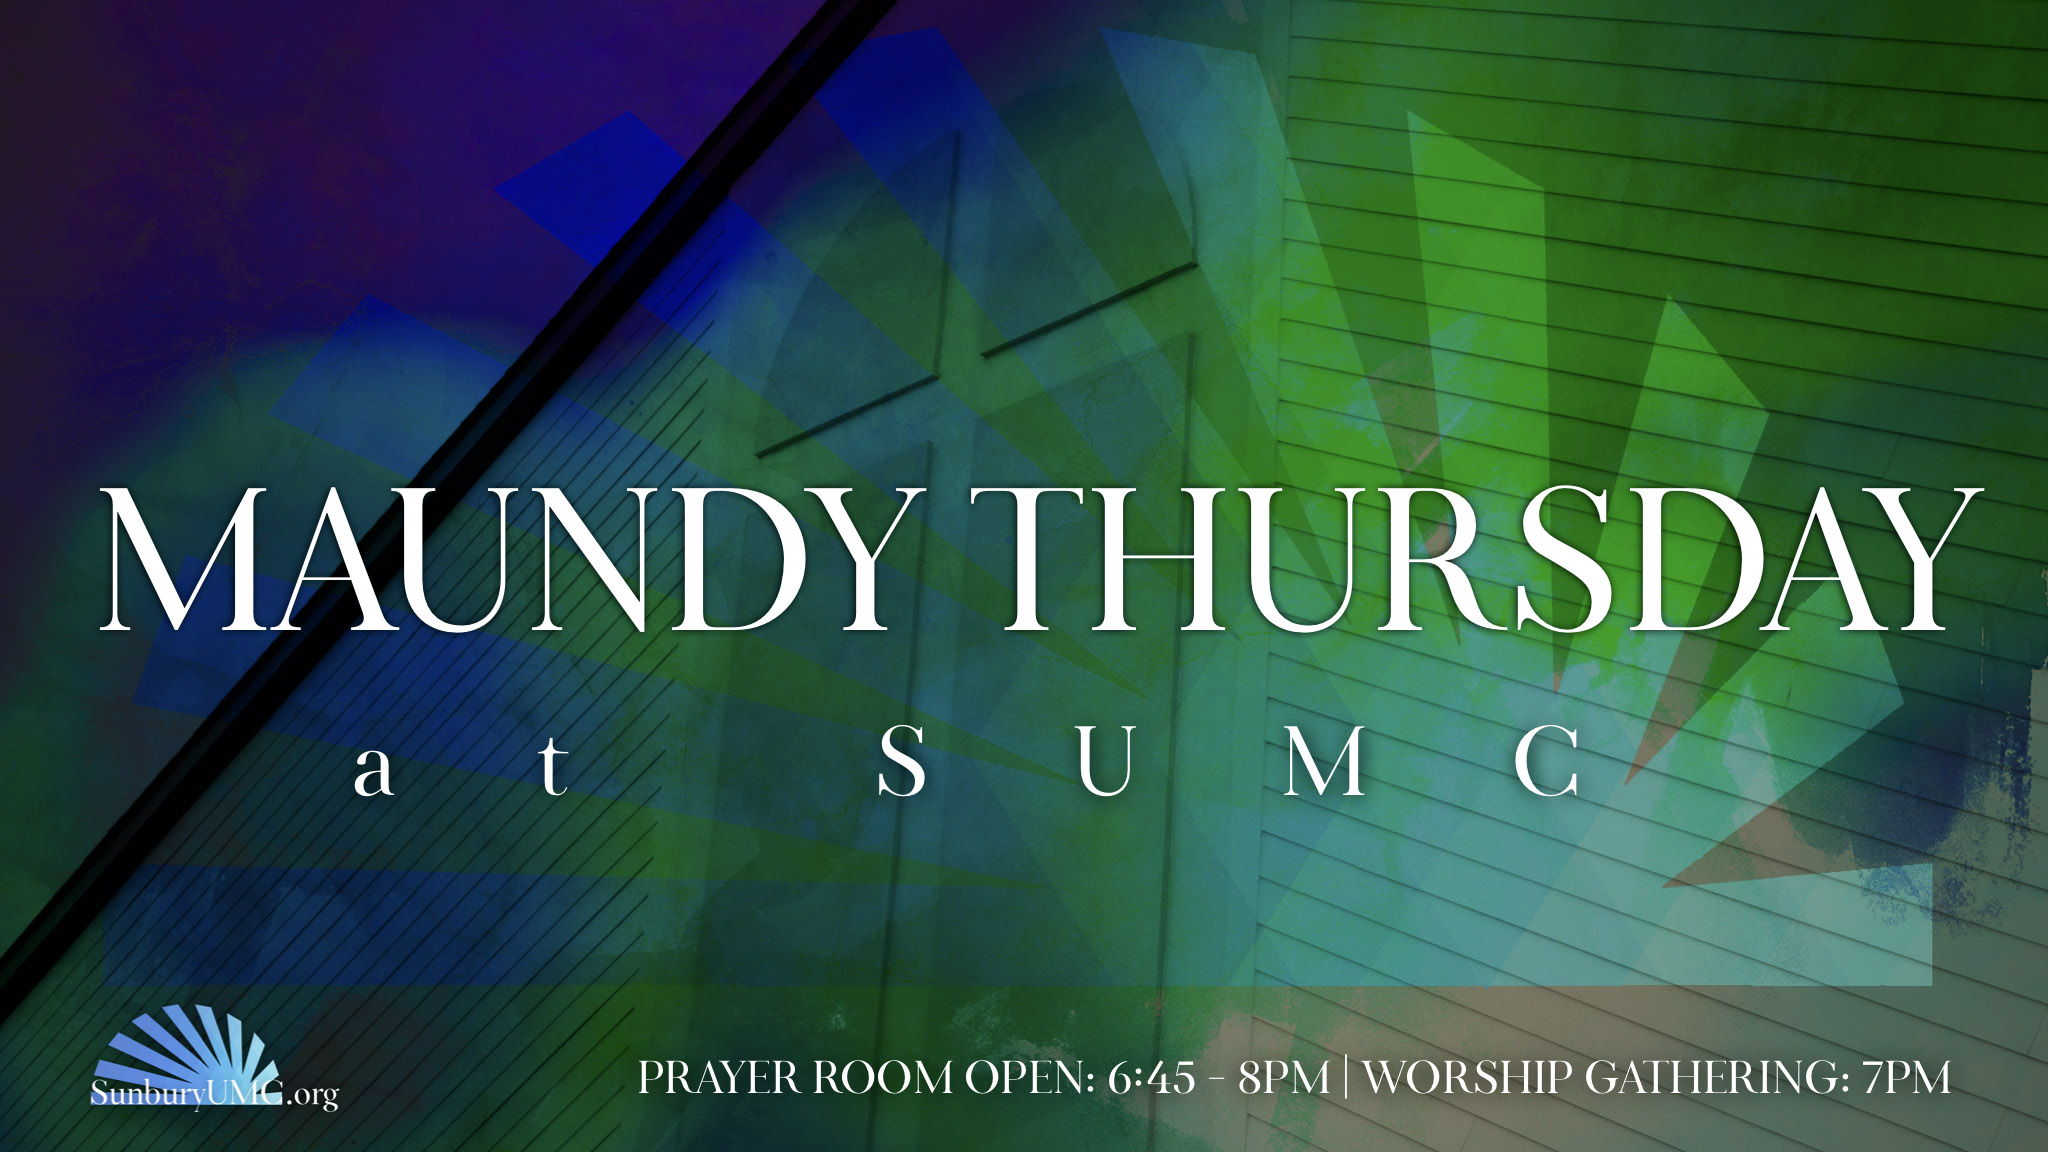 Maundy Thursday @ SUMC — Sunbury United Methodist Church